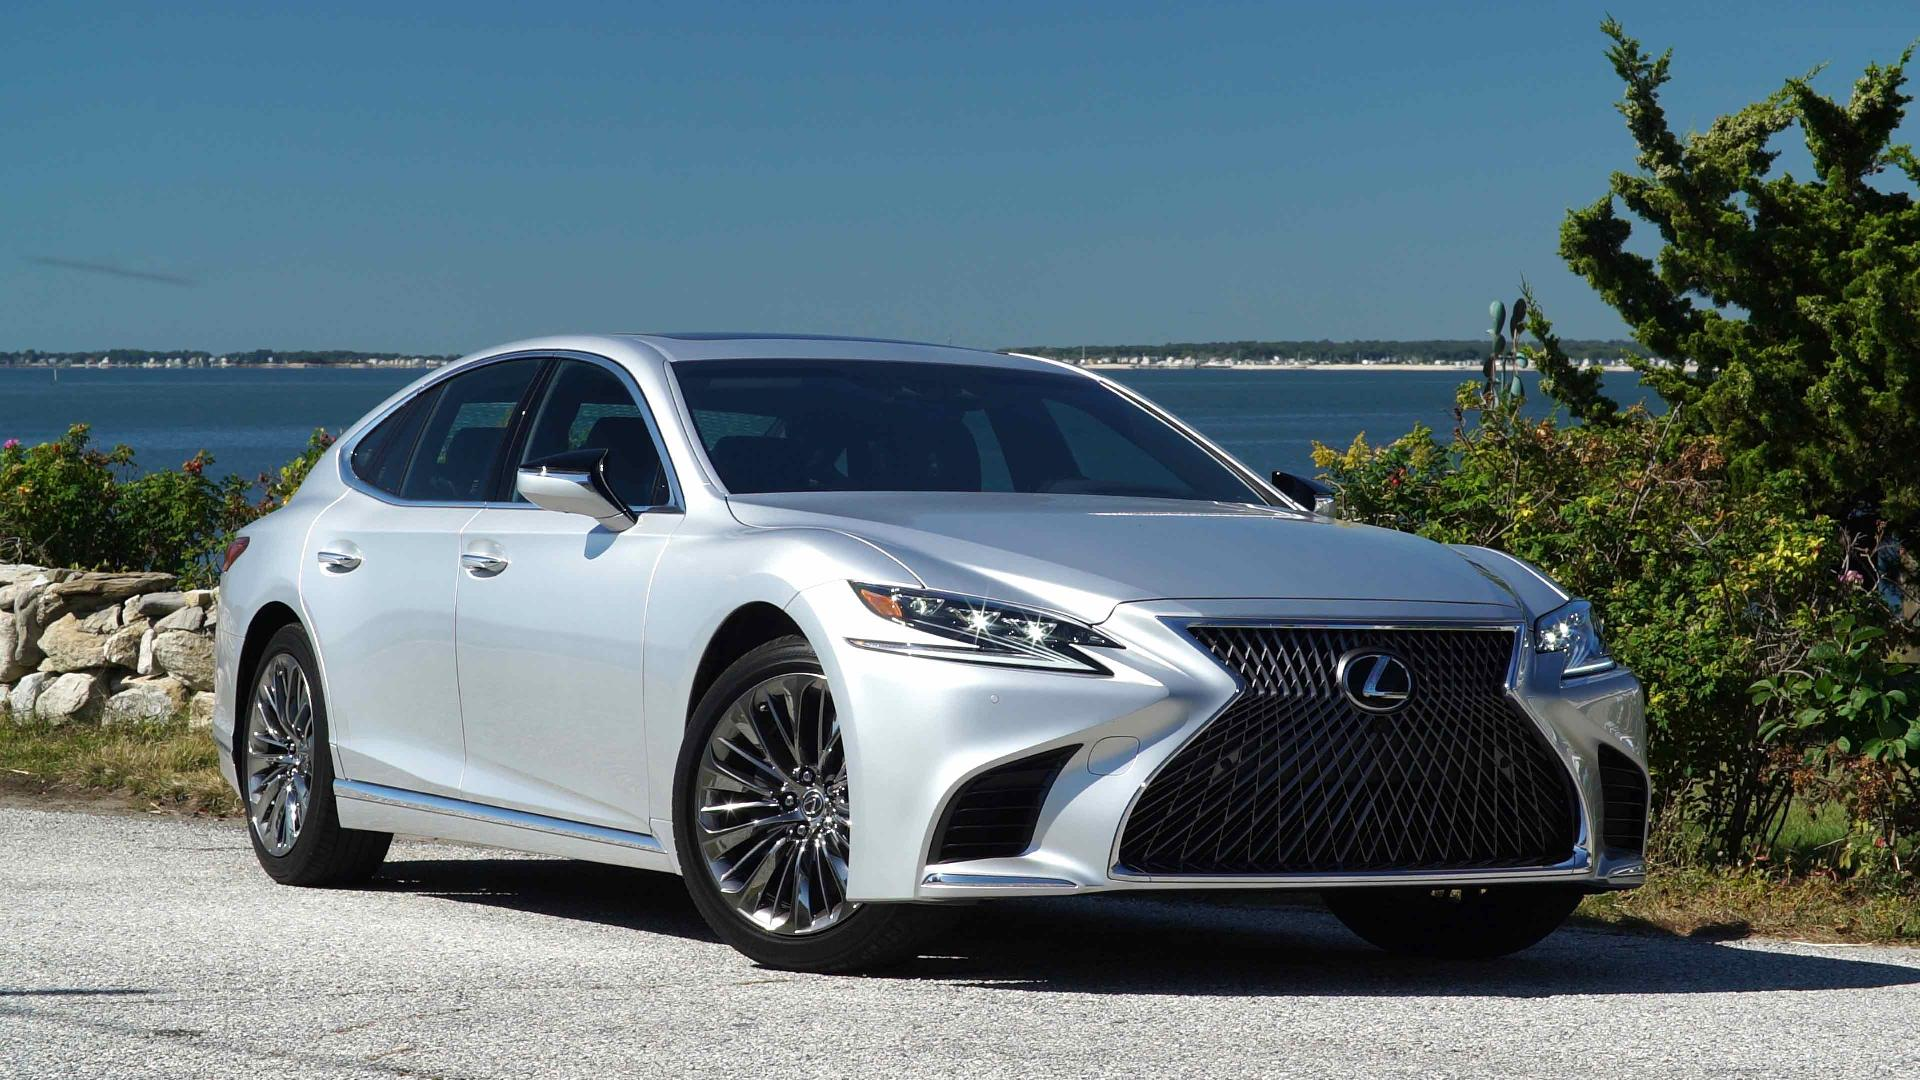 2018 Lexus Ls 500 Reborn With More Tech And Flash Consumer Reports